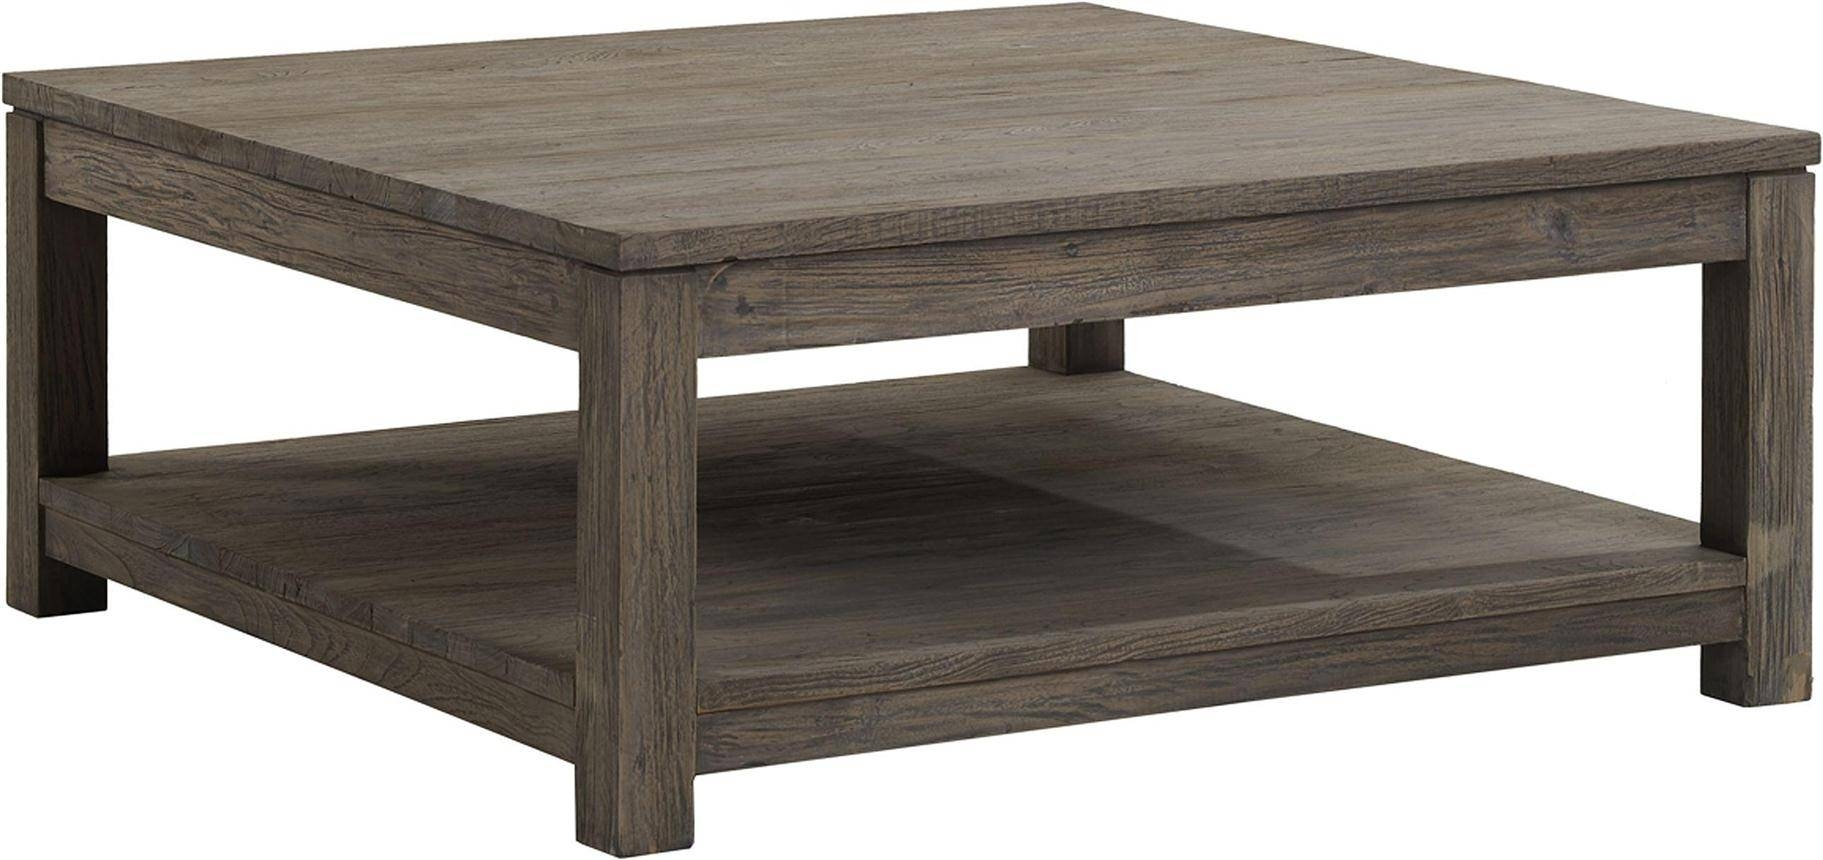 Oversized Square Coffee Tables : Oversized Coffee Table In Tuffed pertaining to Square Coffee Tables (Image 18 of 30)